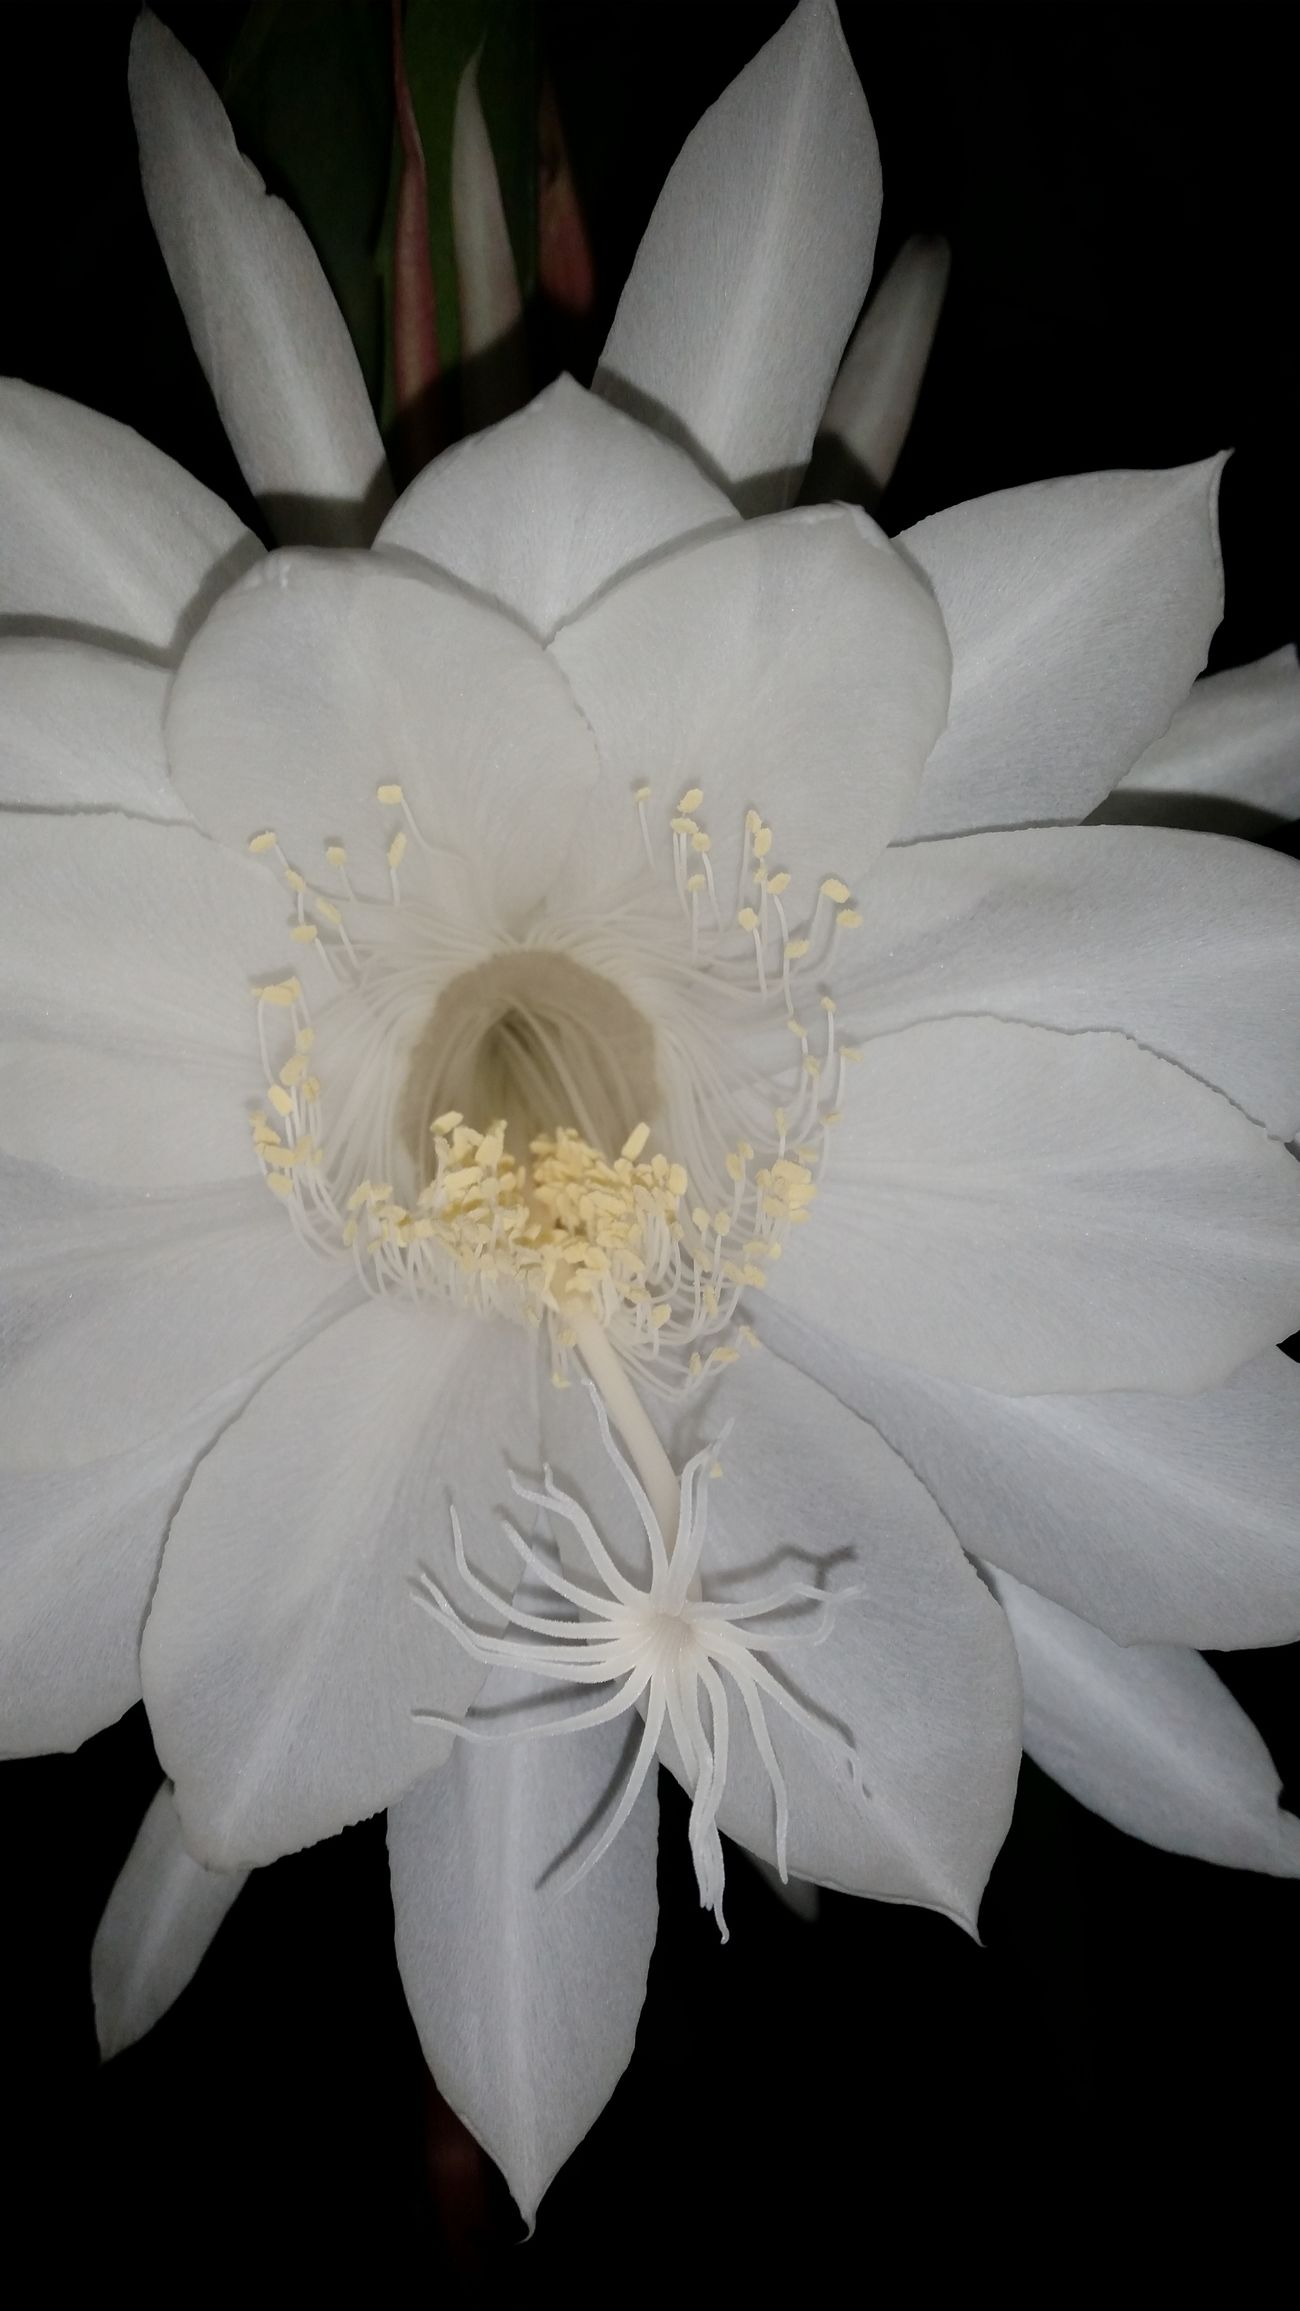 Close-up Beauty In Nature Flower Head Fragility Enjoying Life Happy Makesmesmile Beauty In Nature Outdoors Night Photography Nightblooming Cereus ...